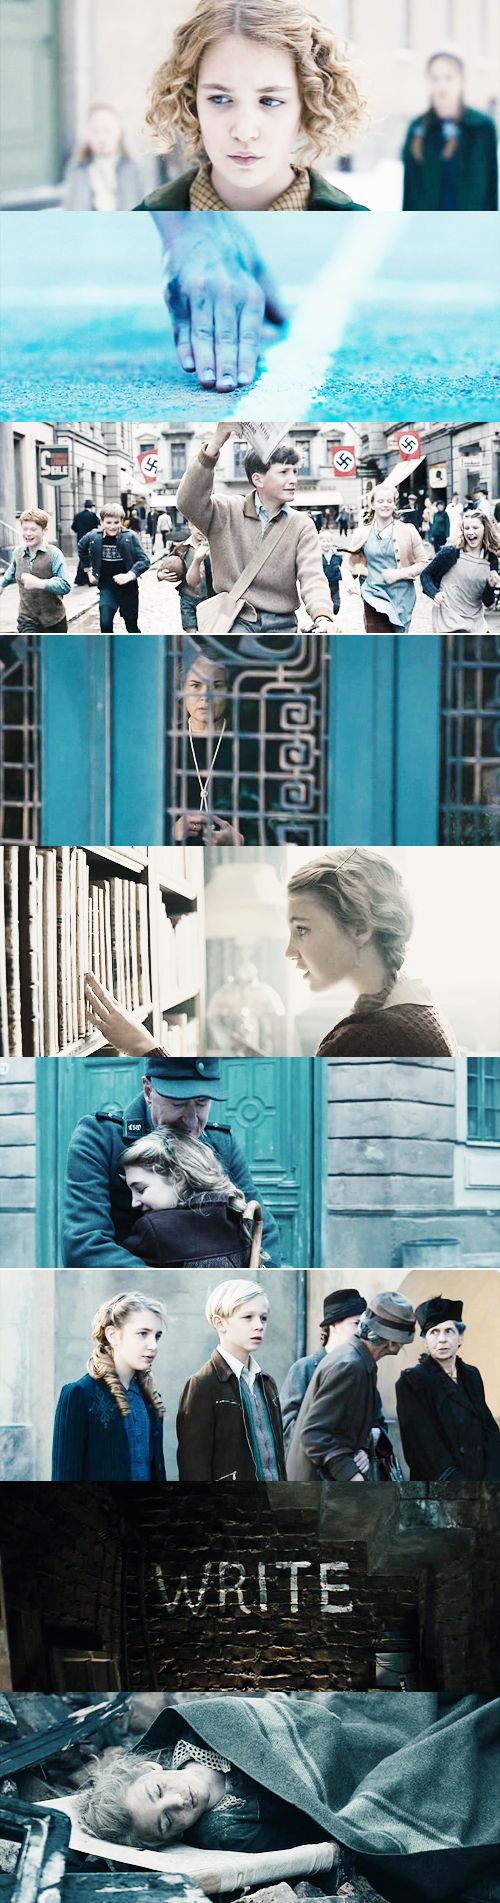 The Book Thief: There once was a girl, who had a friend that lived in the shadows. She would remind him how the sun felt on his skin and the air felt like to breathe, and that reminded her that she was still alive.